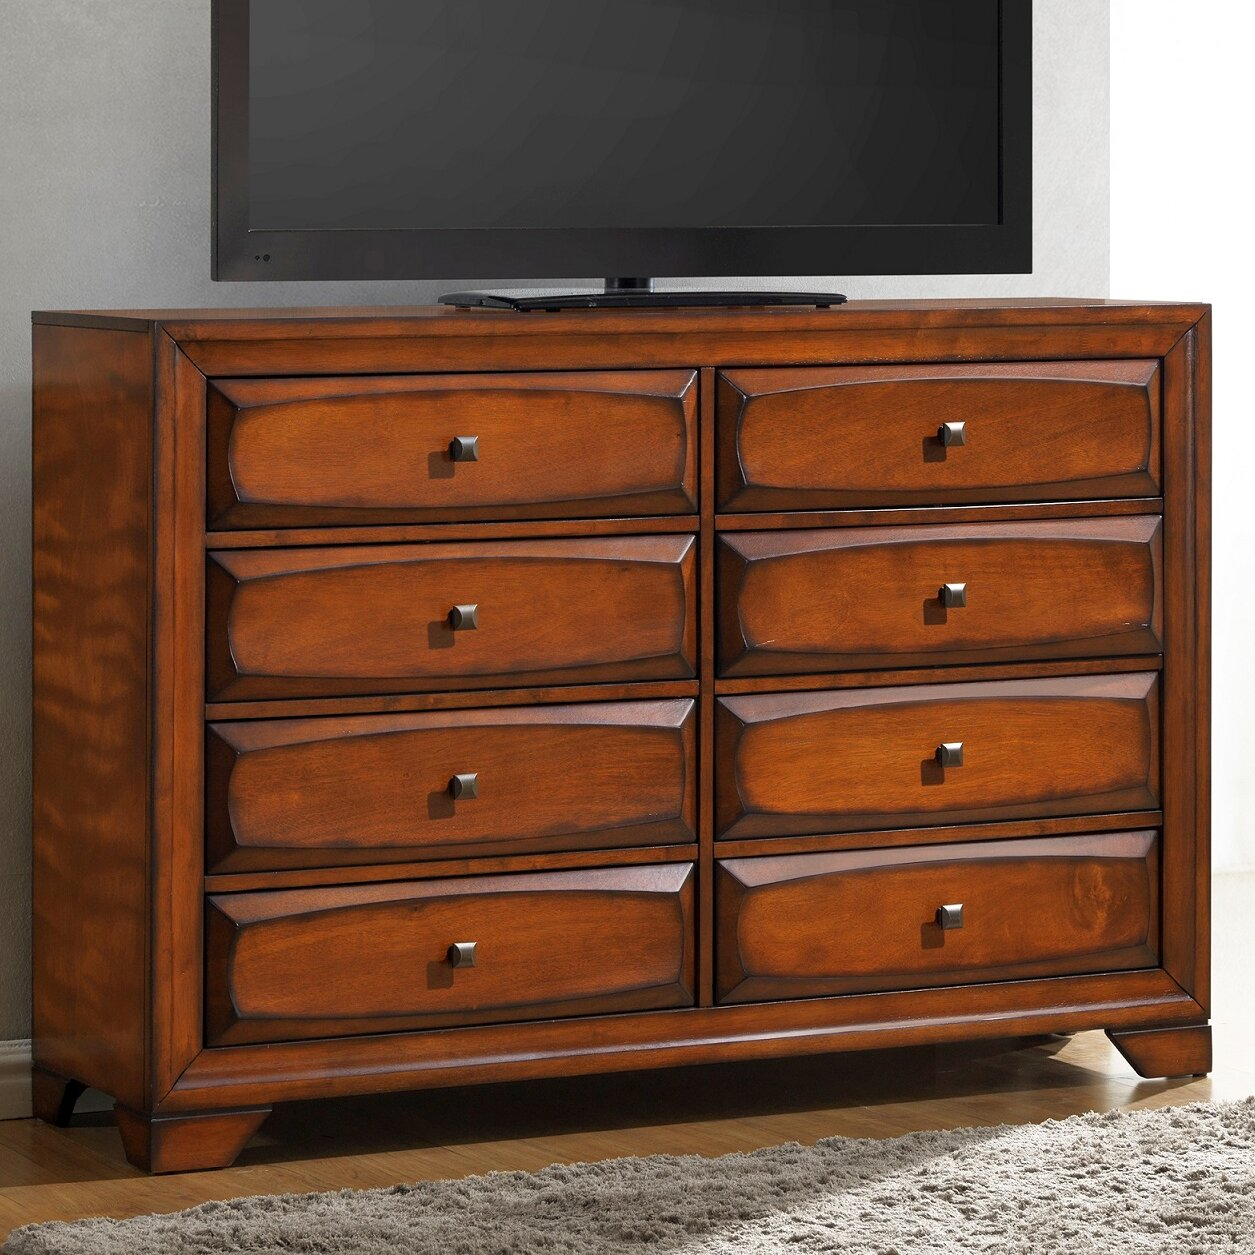 Furniture Store Oakland: Roundhill Furniture Oakland 8 Drawer Dresser